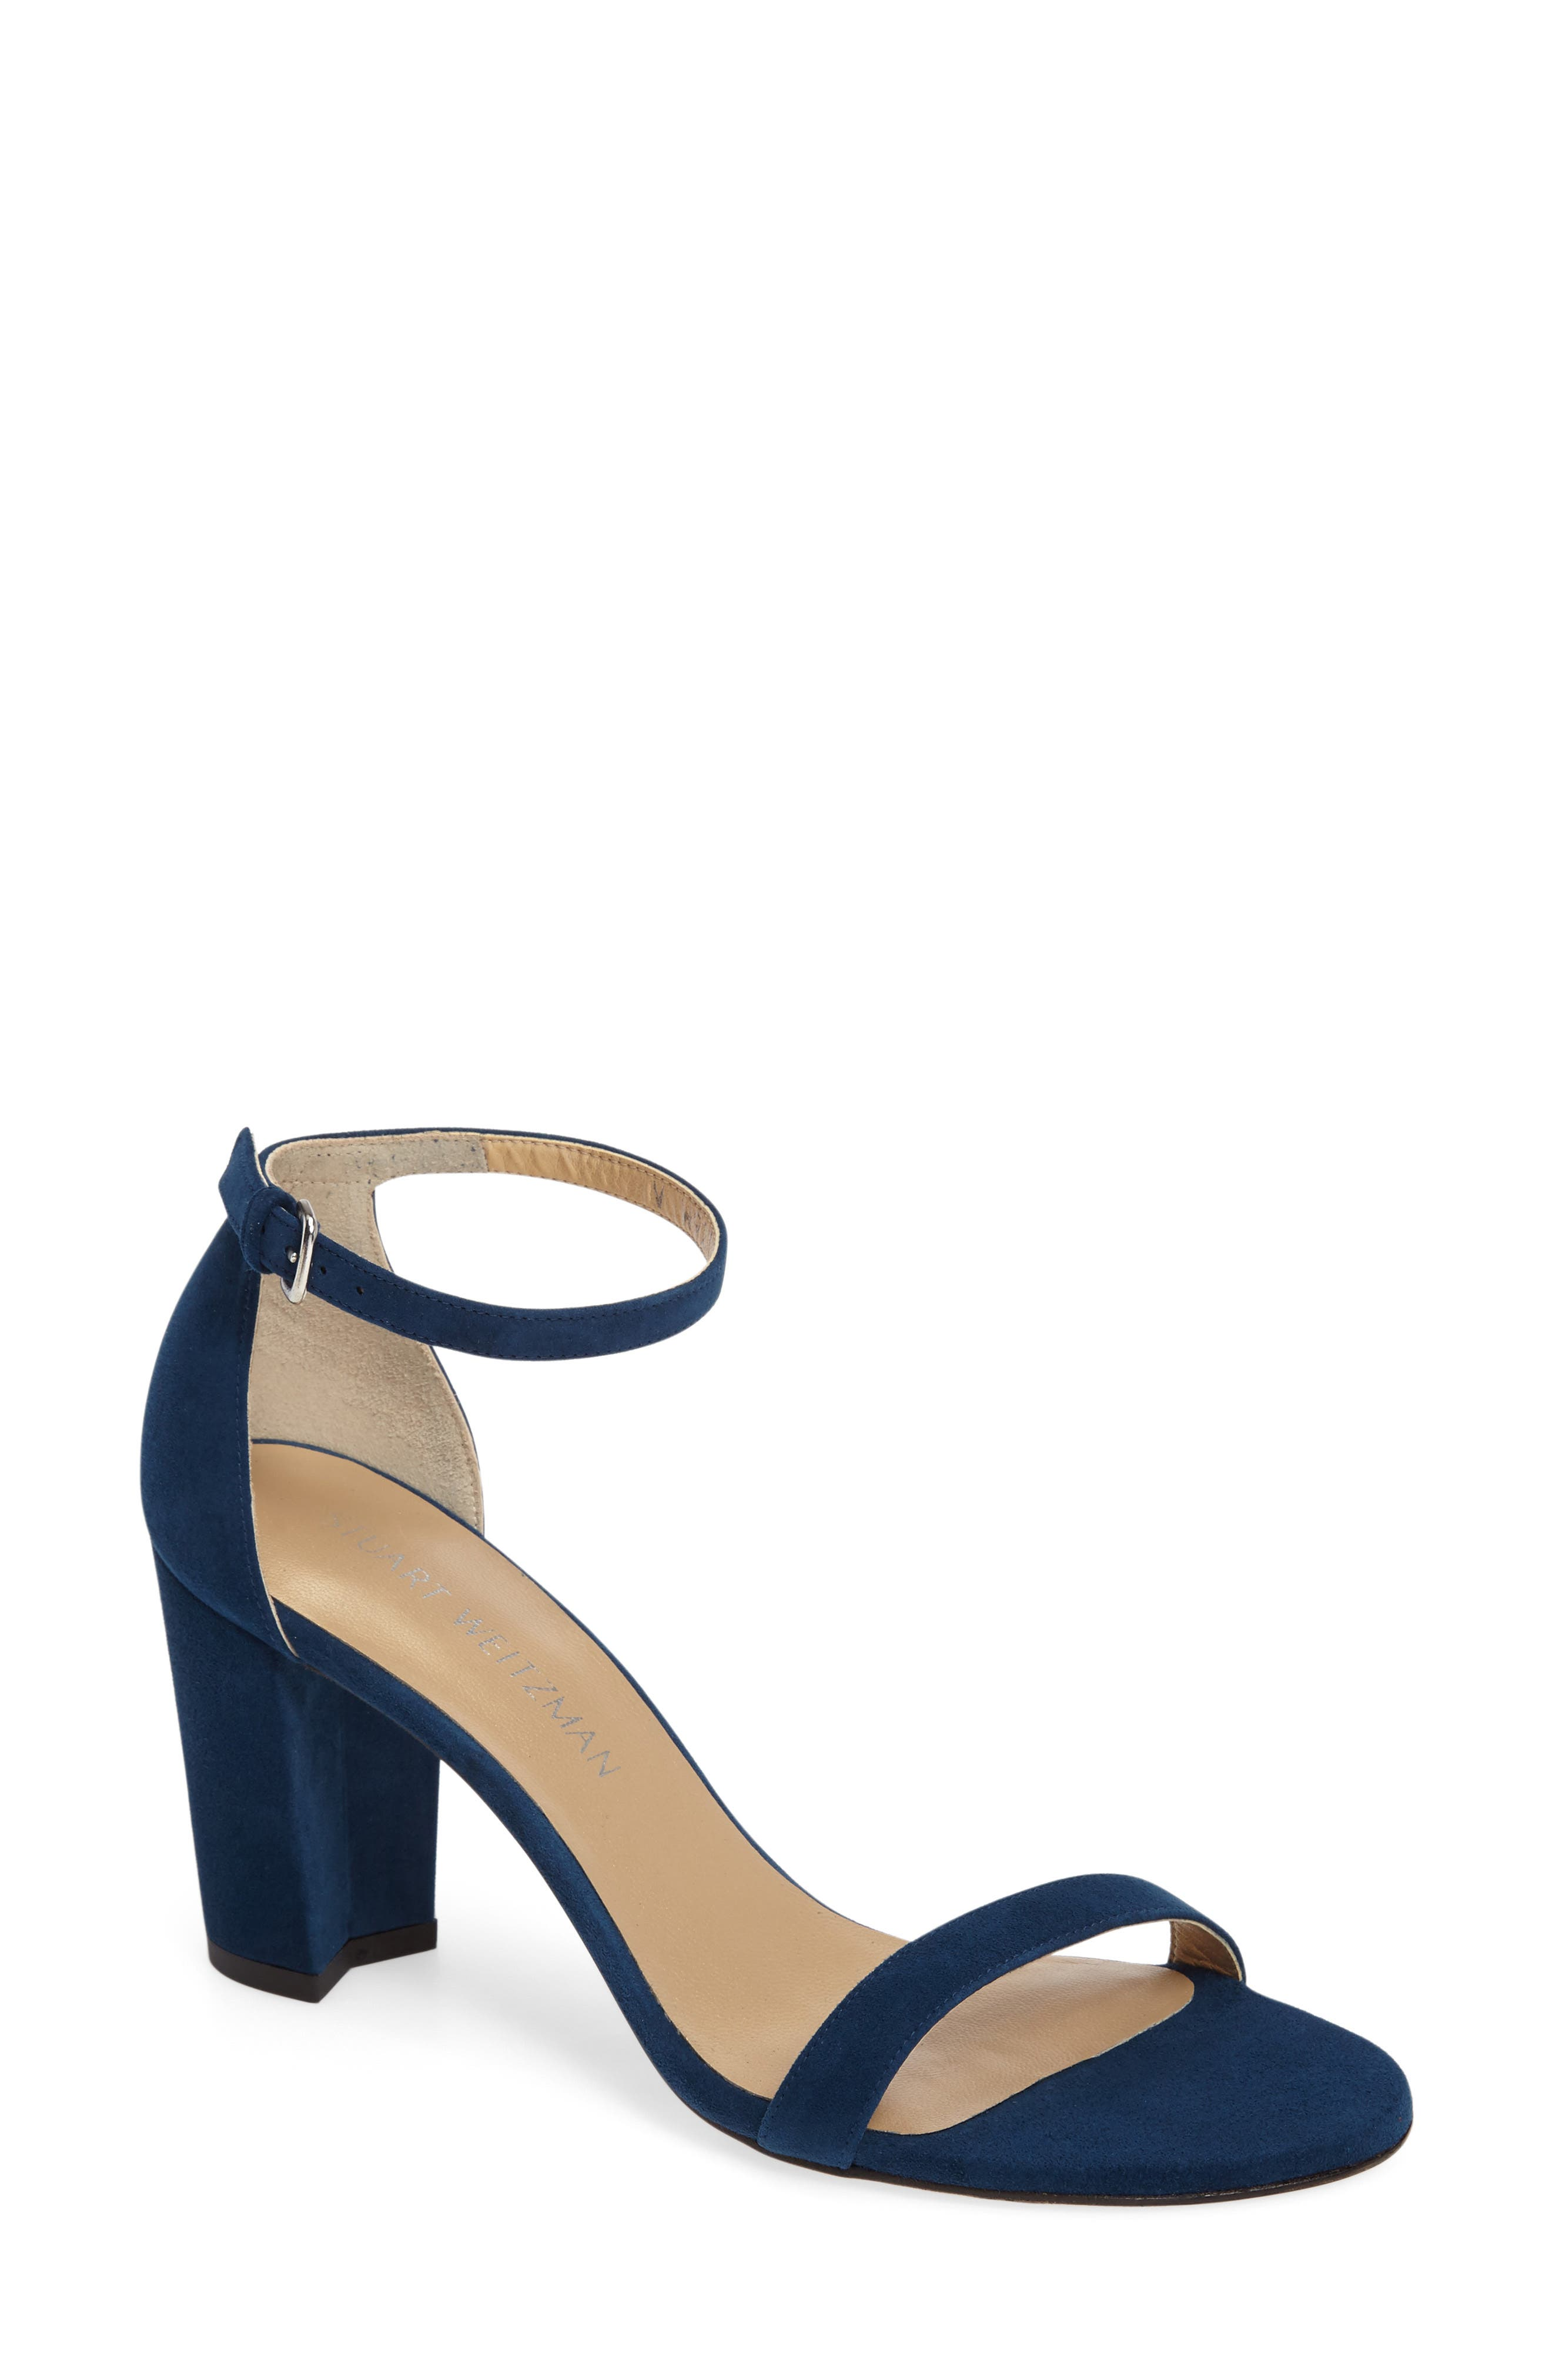 NearlyNude Ankle Strap Sandal,                             Main thumbnail 23, color,